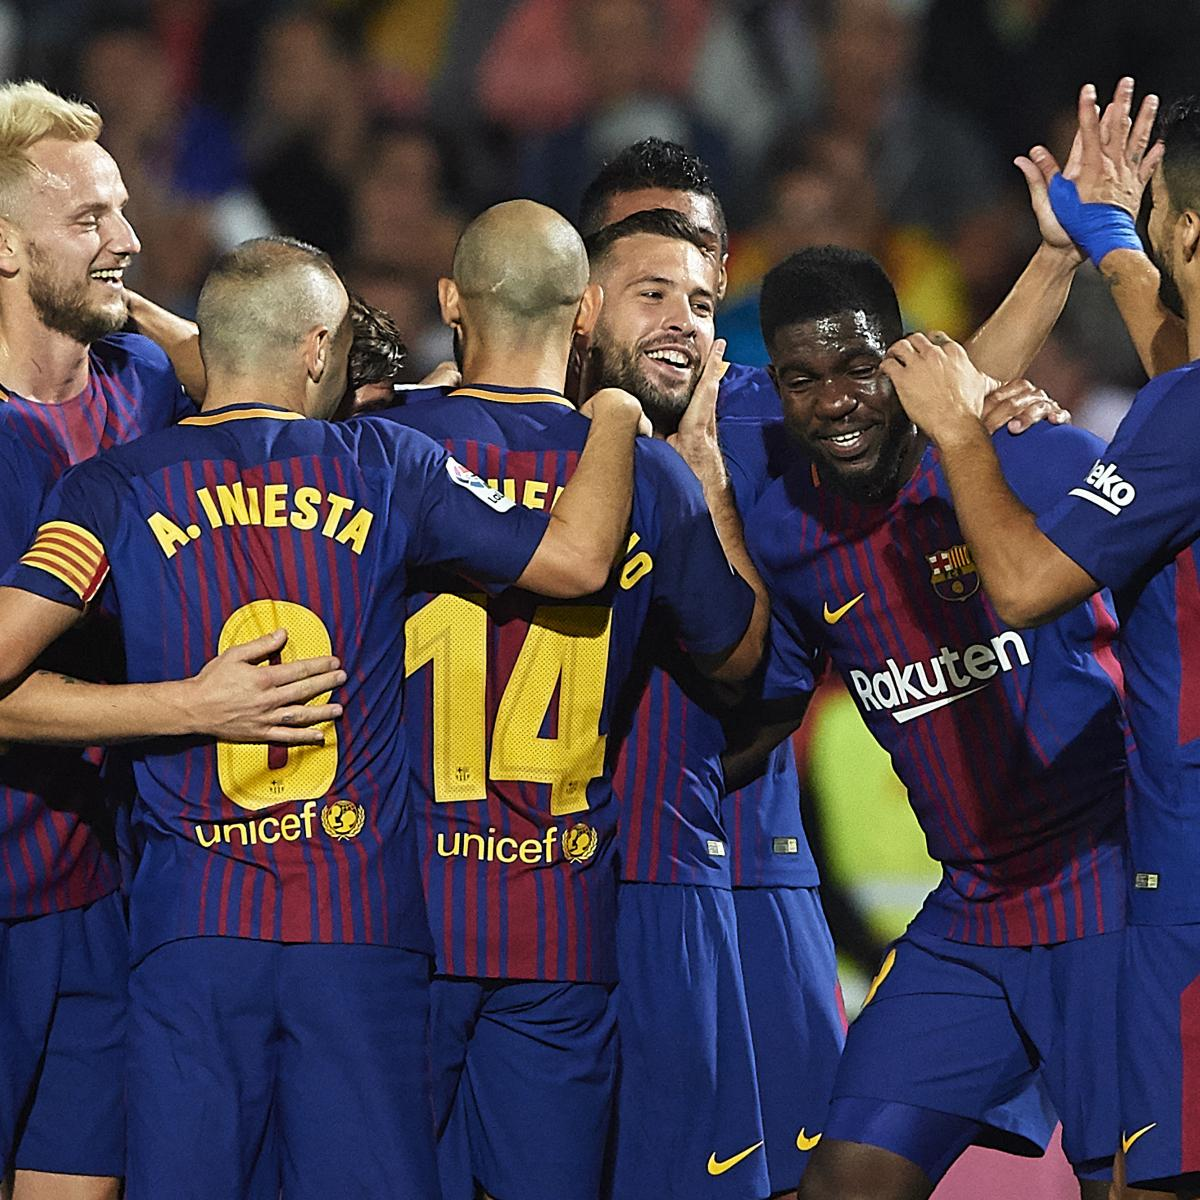 La liga results 2017 standings highlights after saturday - La liga latest results and table ...